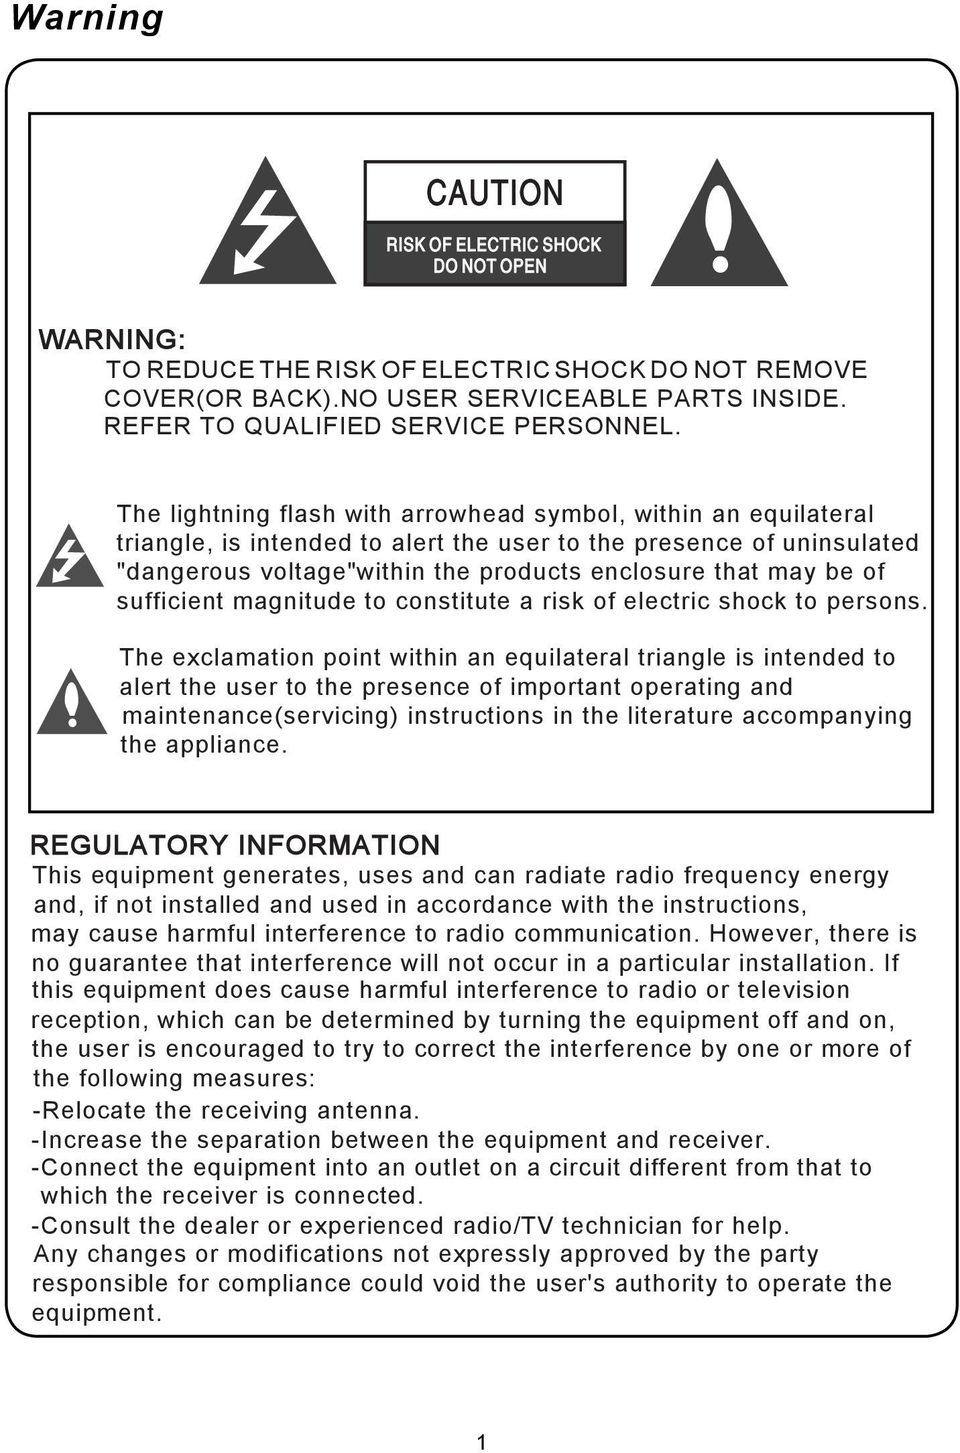 sufficient magnitude to constitute a risk of electric shock to persons.